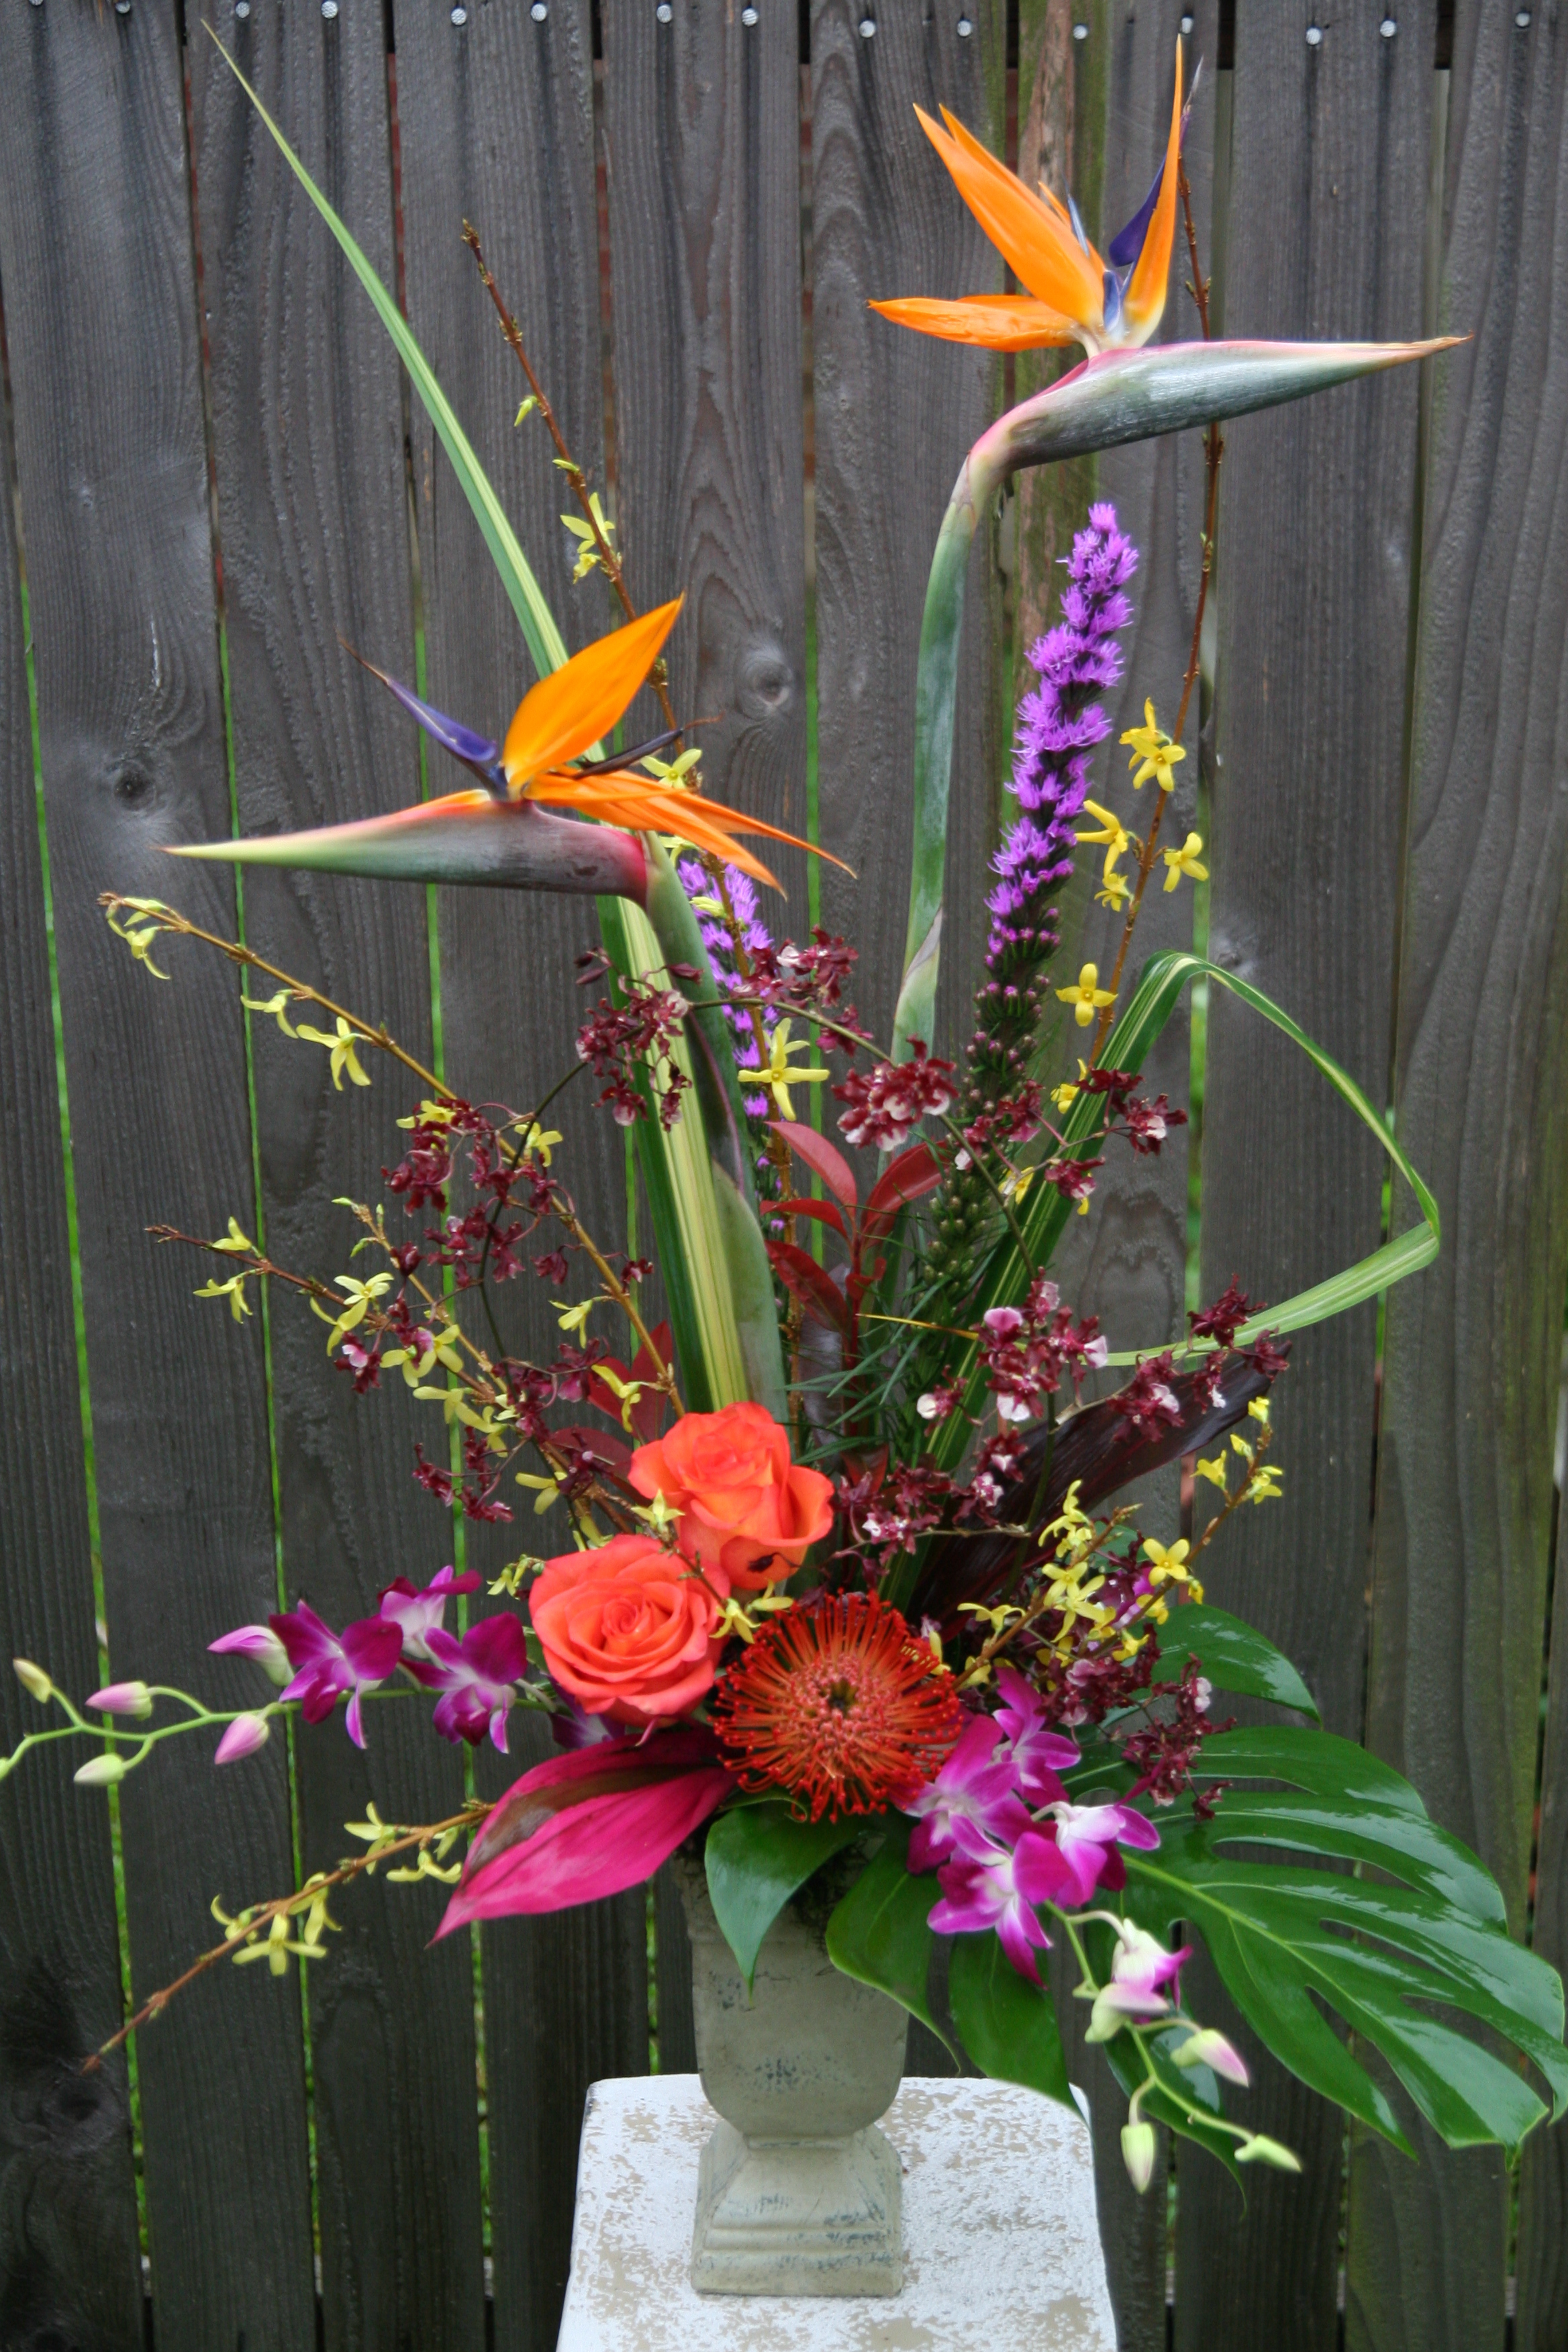 Flowers & Decor, yellow, orange, pink, red, purple, green, Flowers, Dazzling bouquets